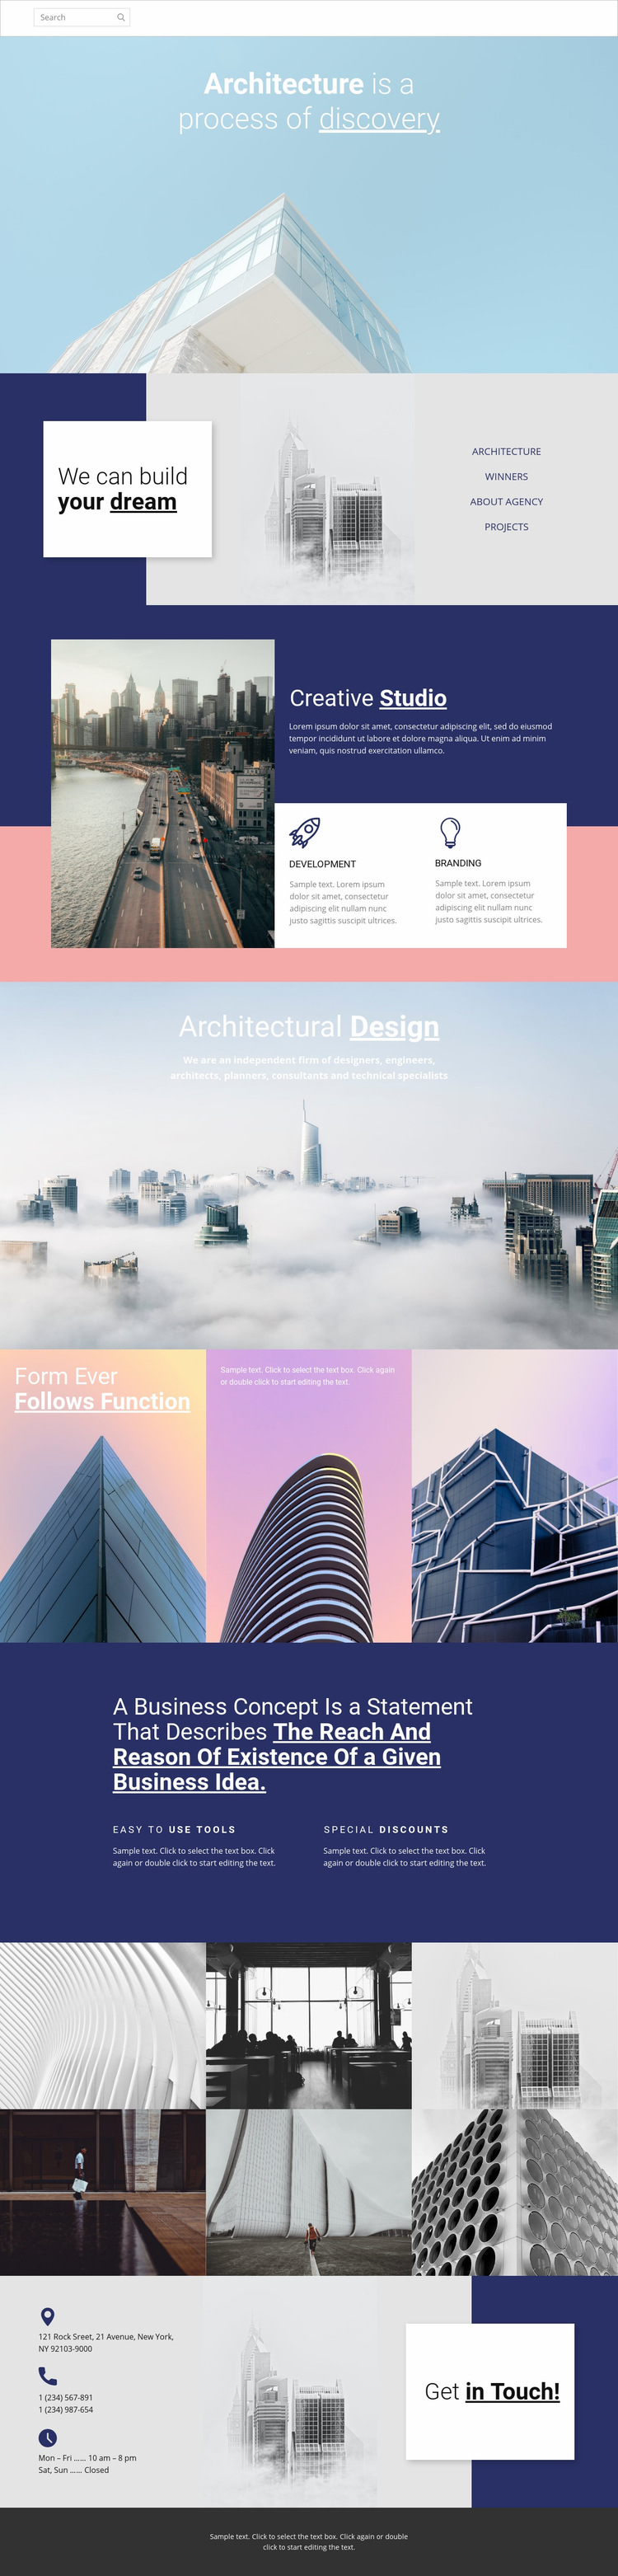 Wonders of architecture Web Page Design